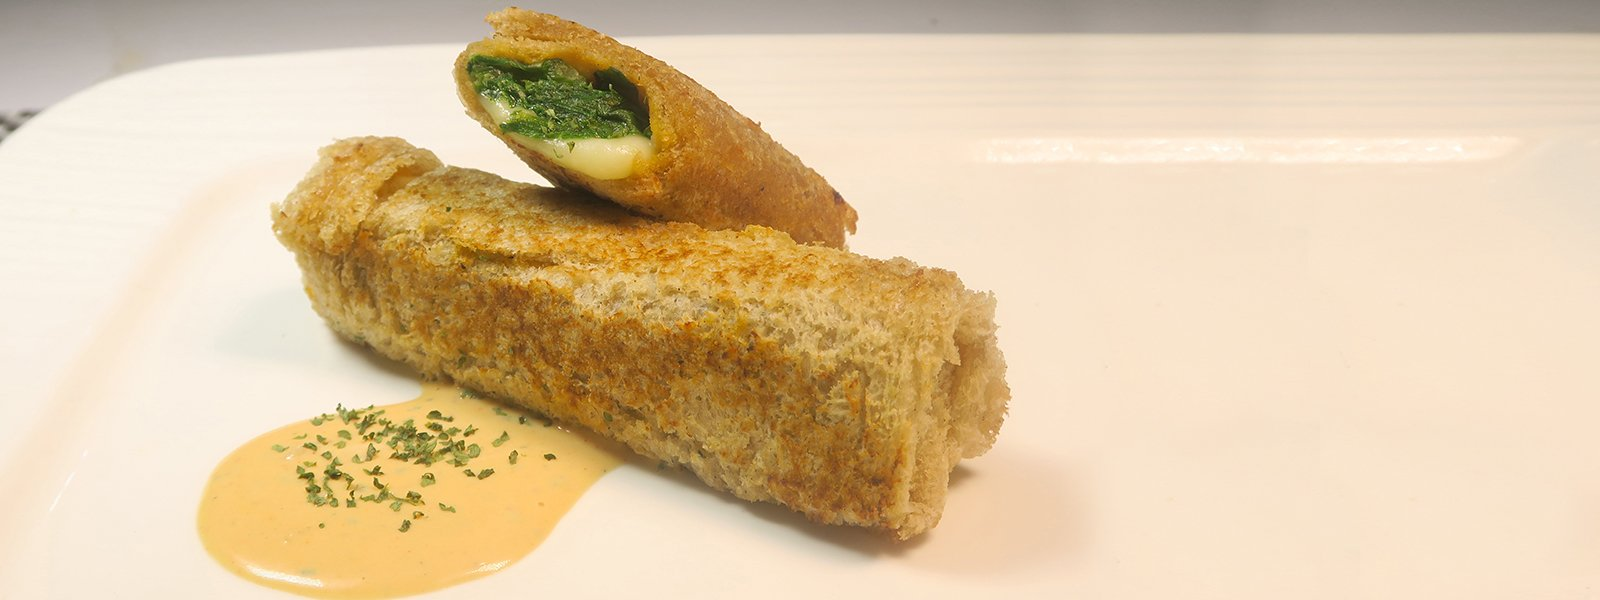 Lentils & Spinach Rollups